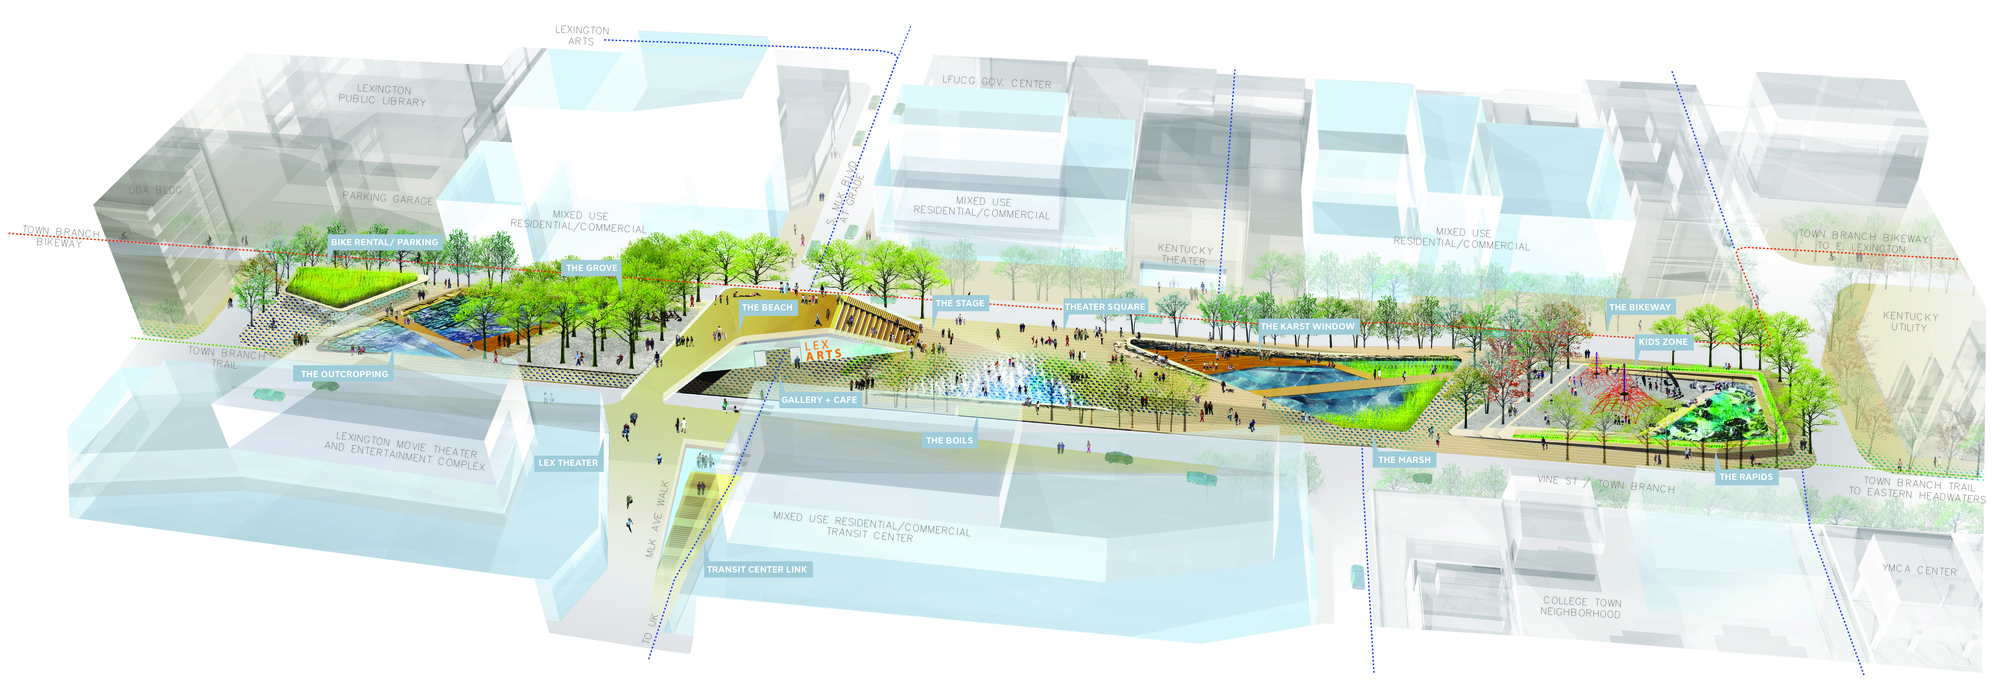 gallery scape landscape architecture wins competition